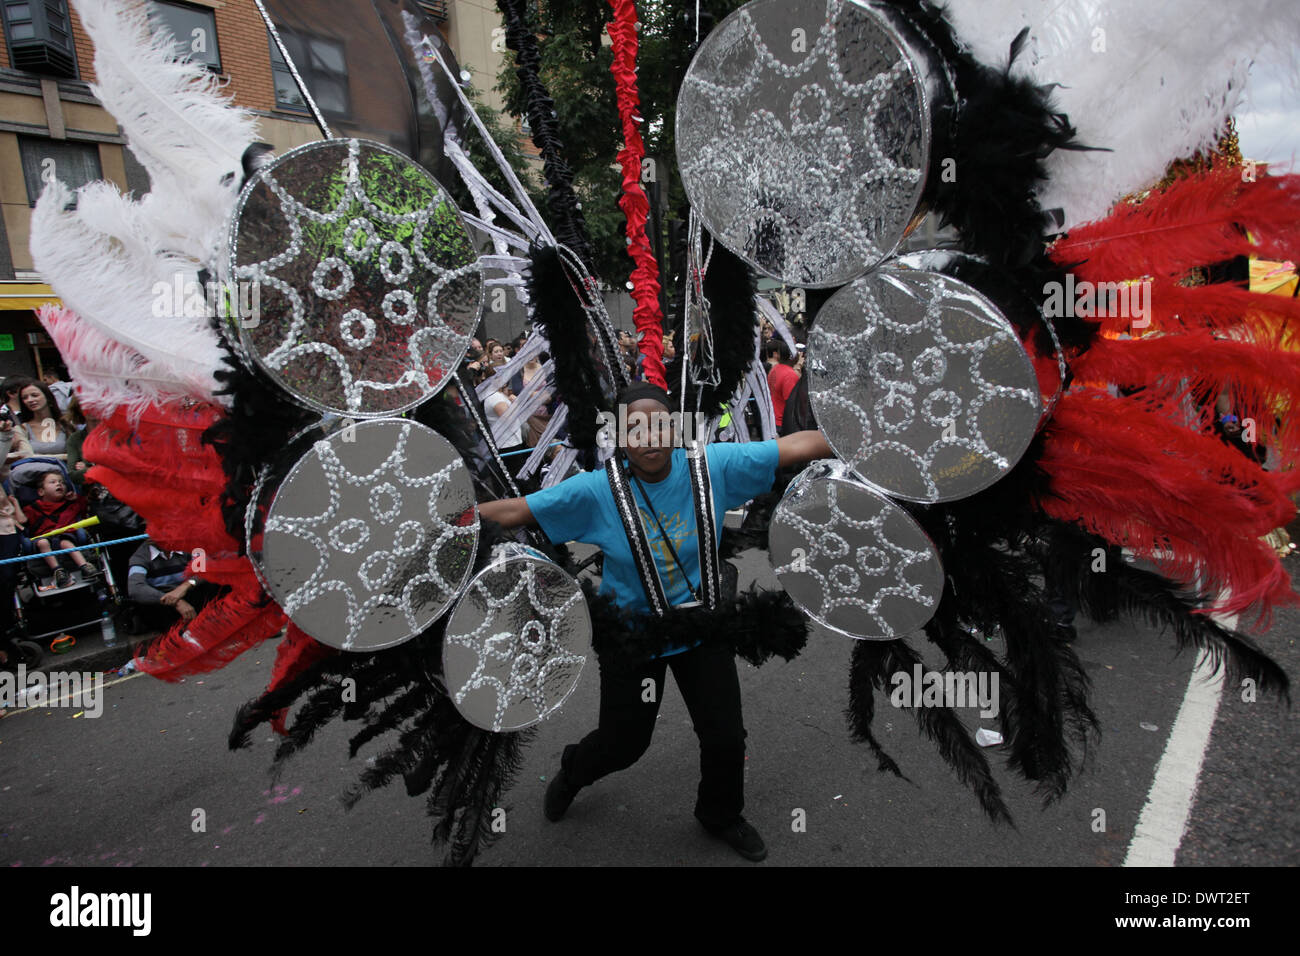 Revelers and dancers at Notting Hill Carnival, London 2011 - Stock Image